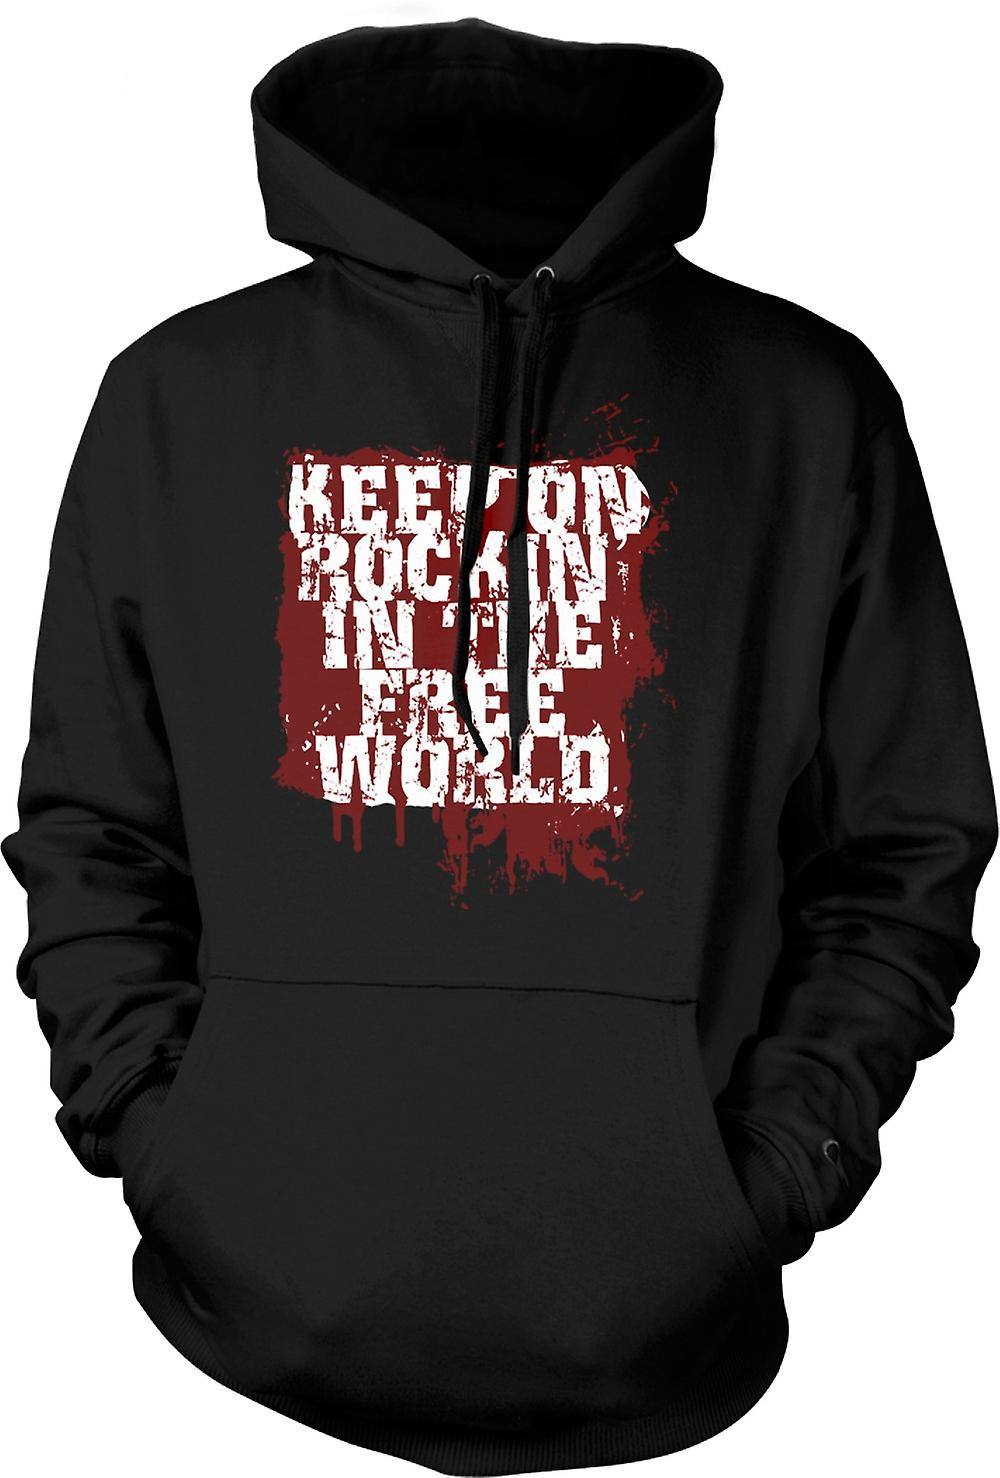 Kinder-Hoodie - Keep On Rockin In der freien Welt